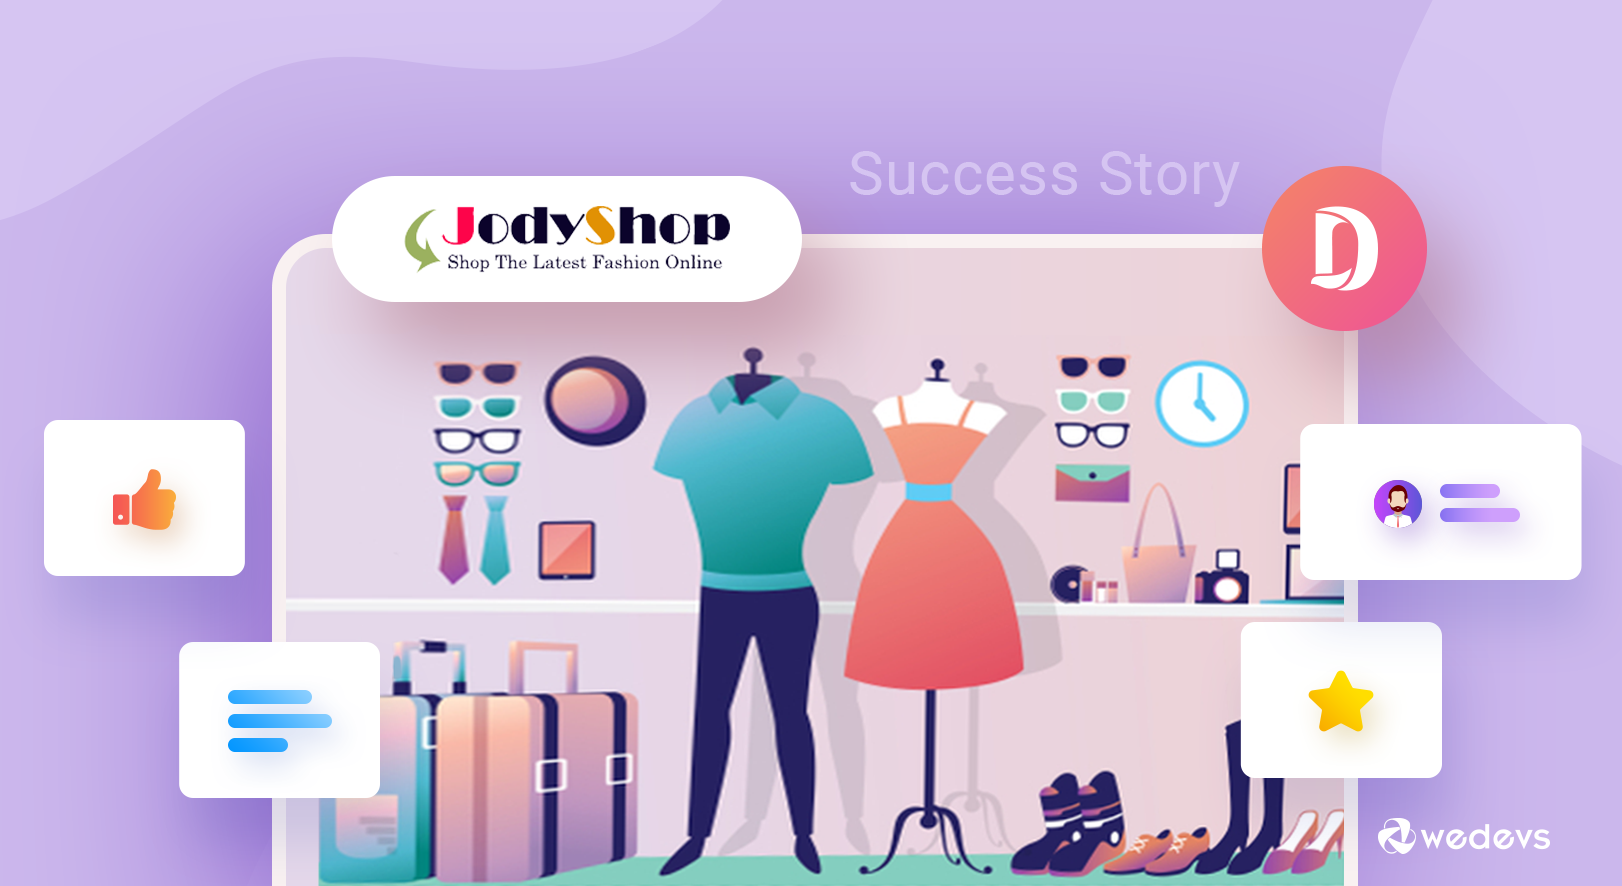 Jodyshop Dokan Success Story